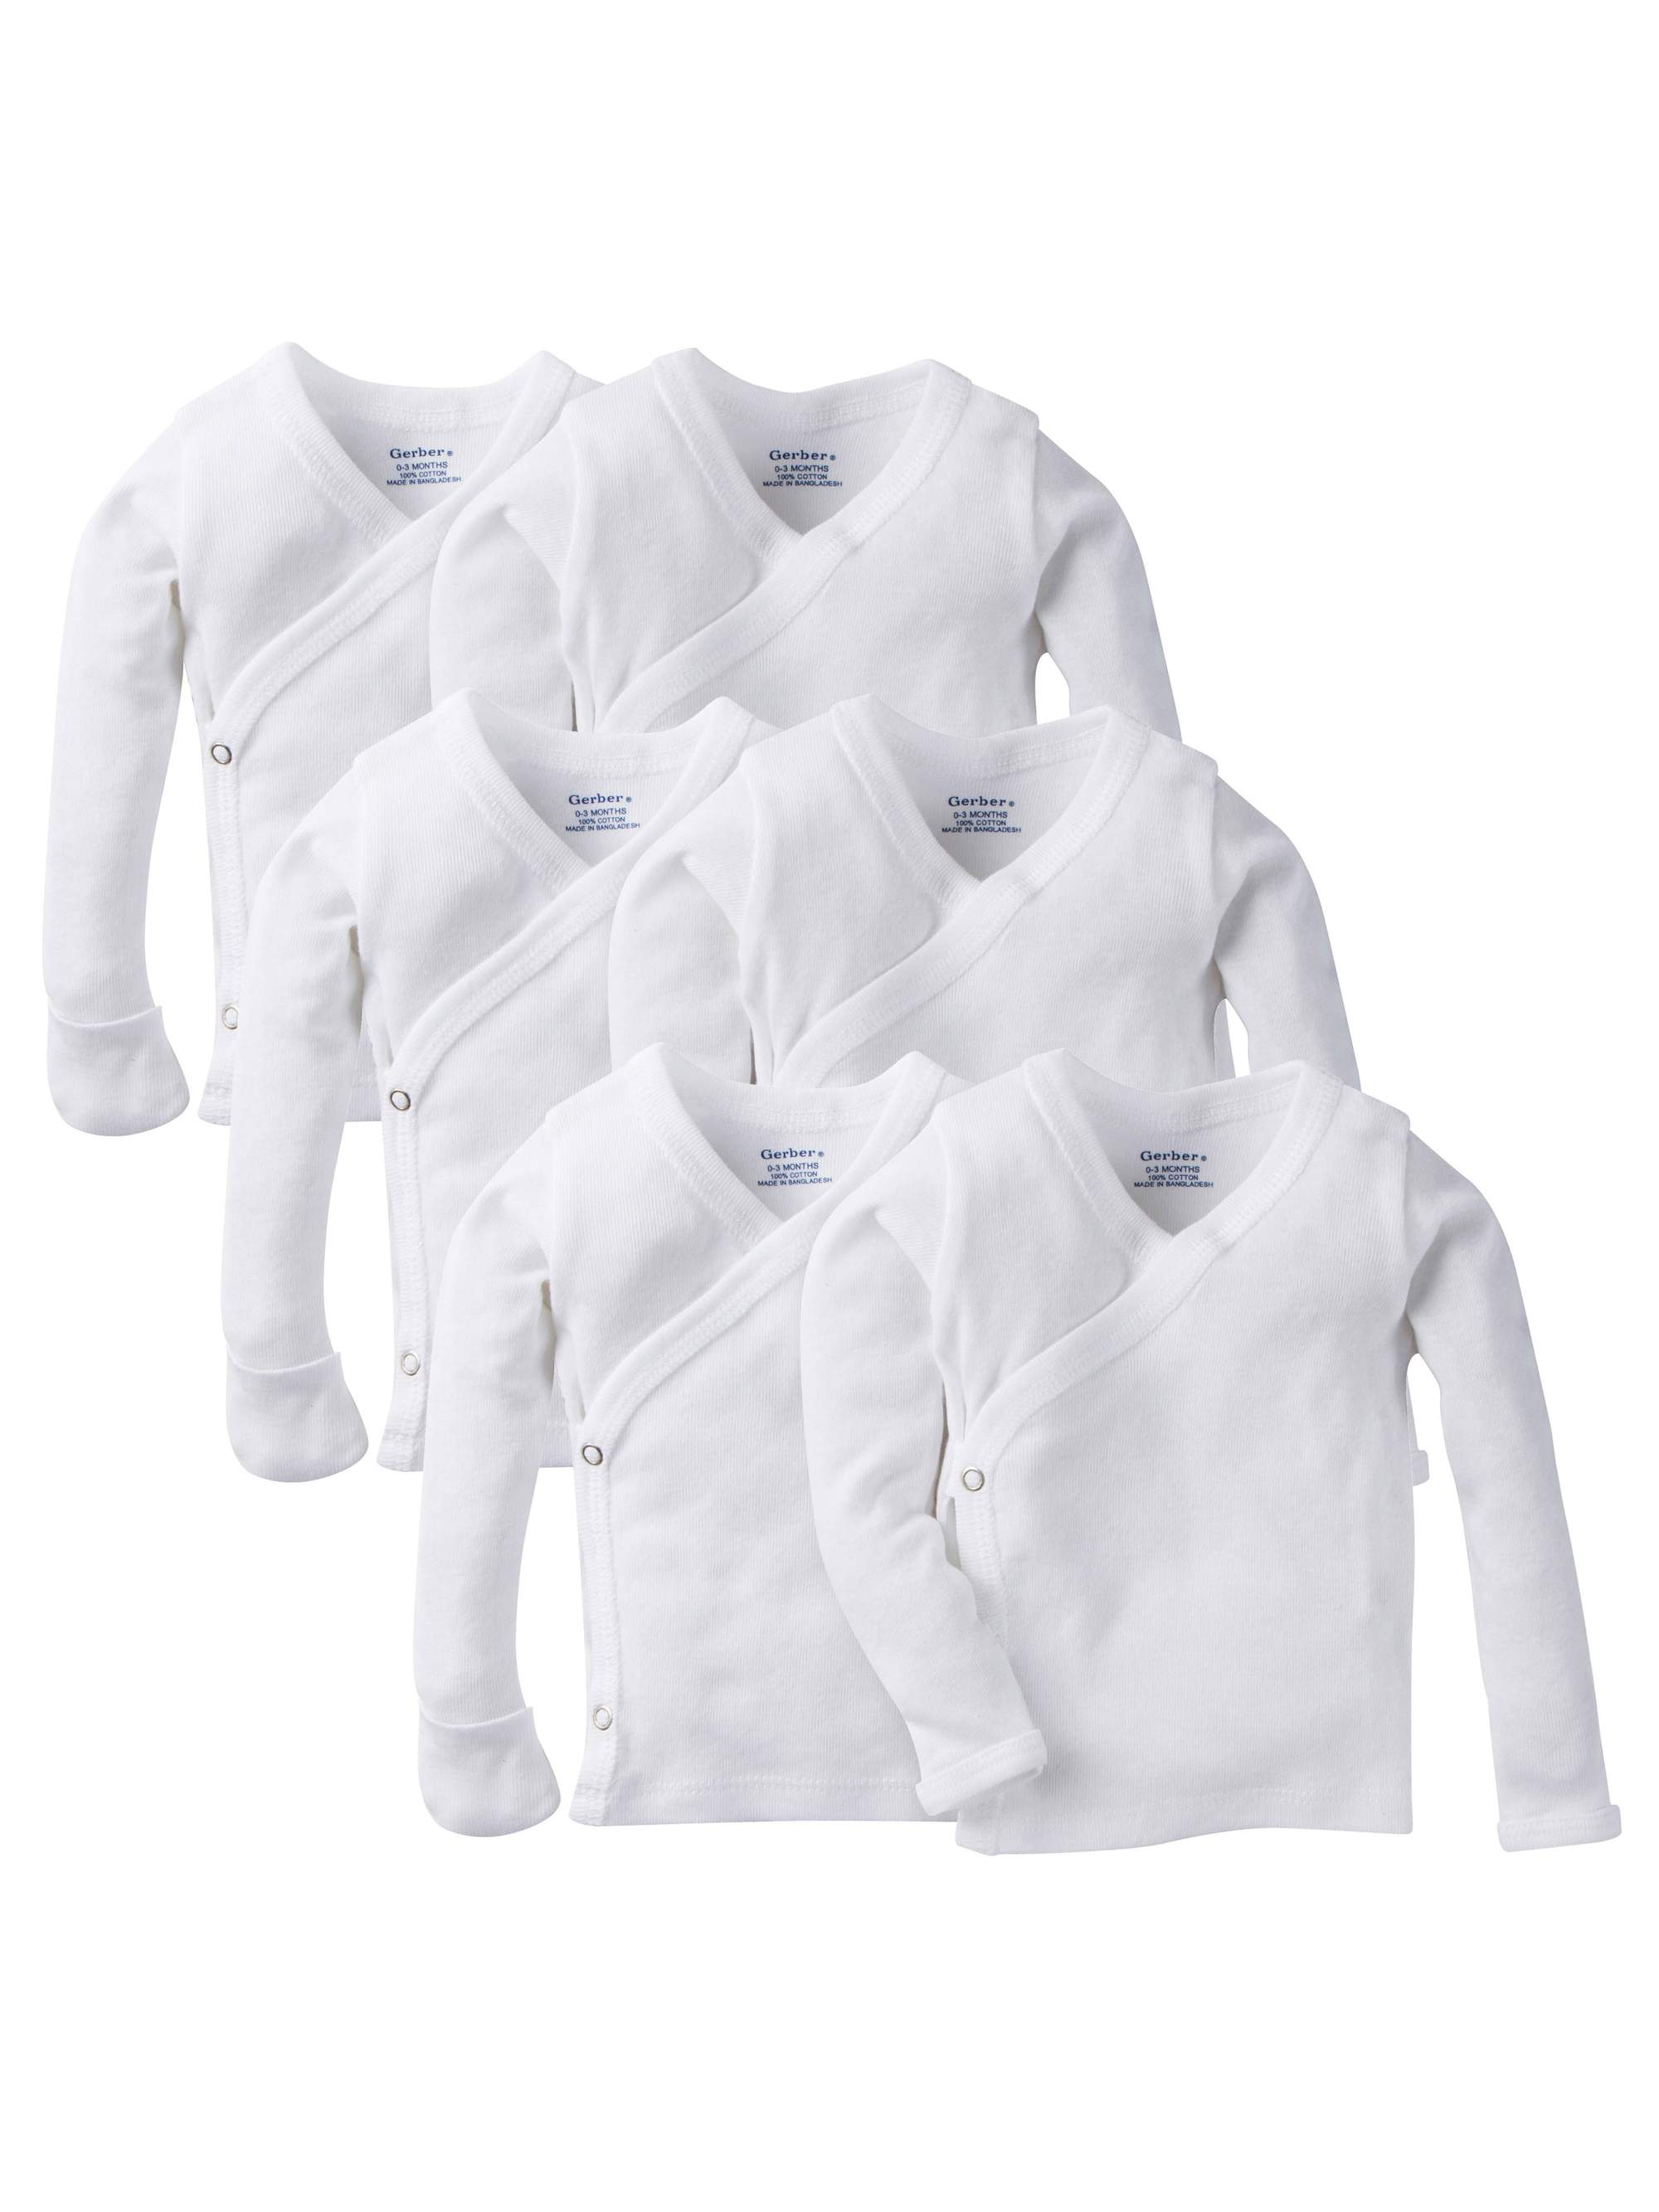 Long Sleeve Side Snap Shirt with Mitten Cuffs, 6pk (Baby Boy or Baby Girl Unisex)